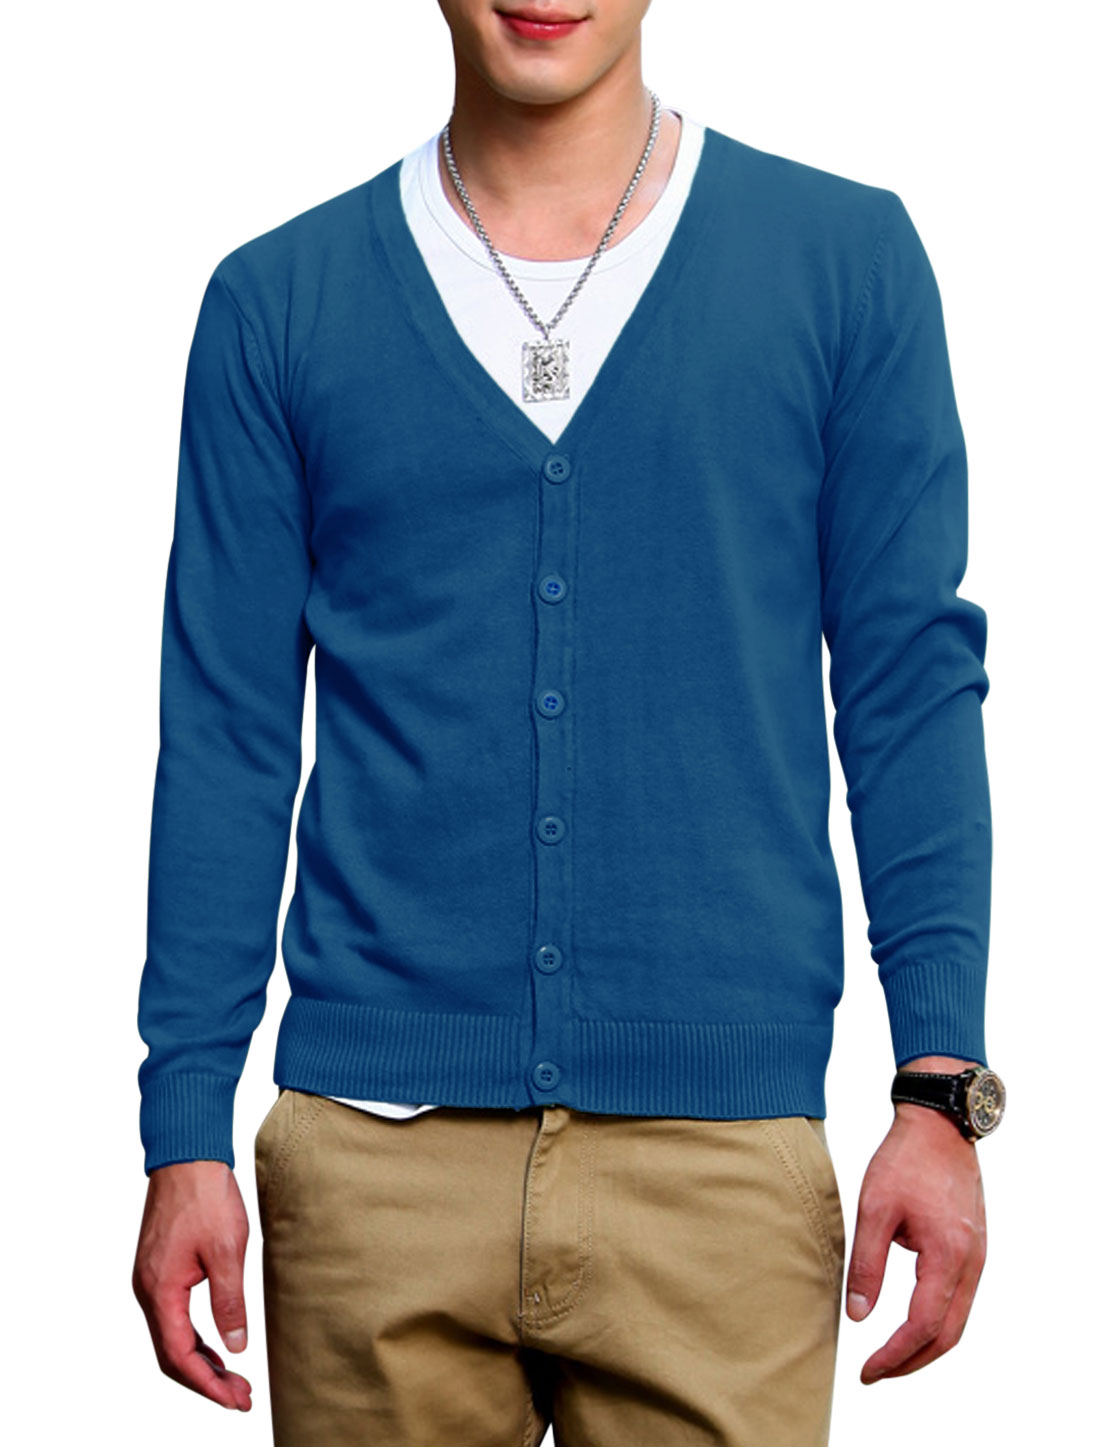 Leisure Design Long Sleeves Button Up Dark Blue Knit Cardigan for Men S